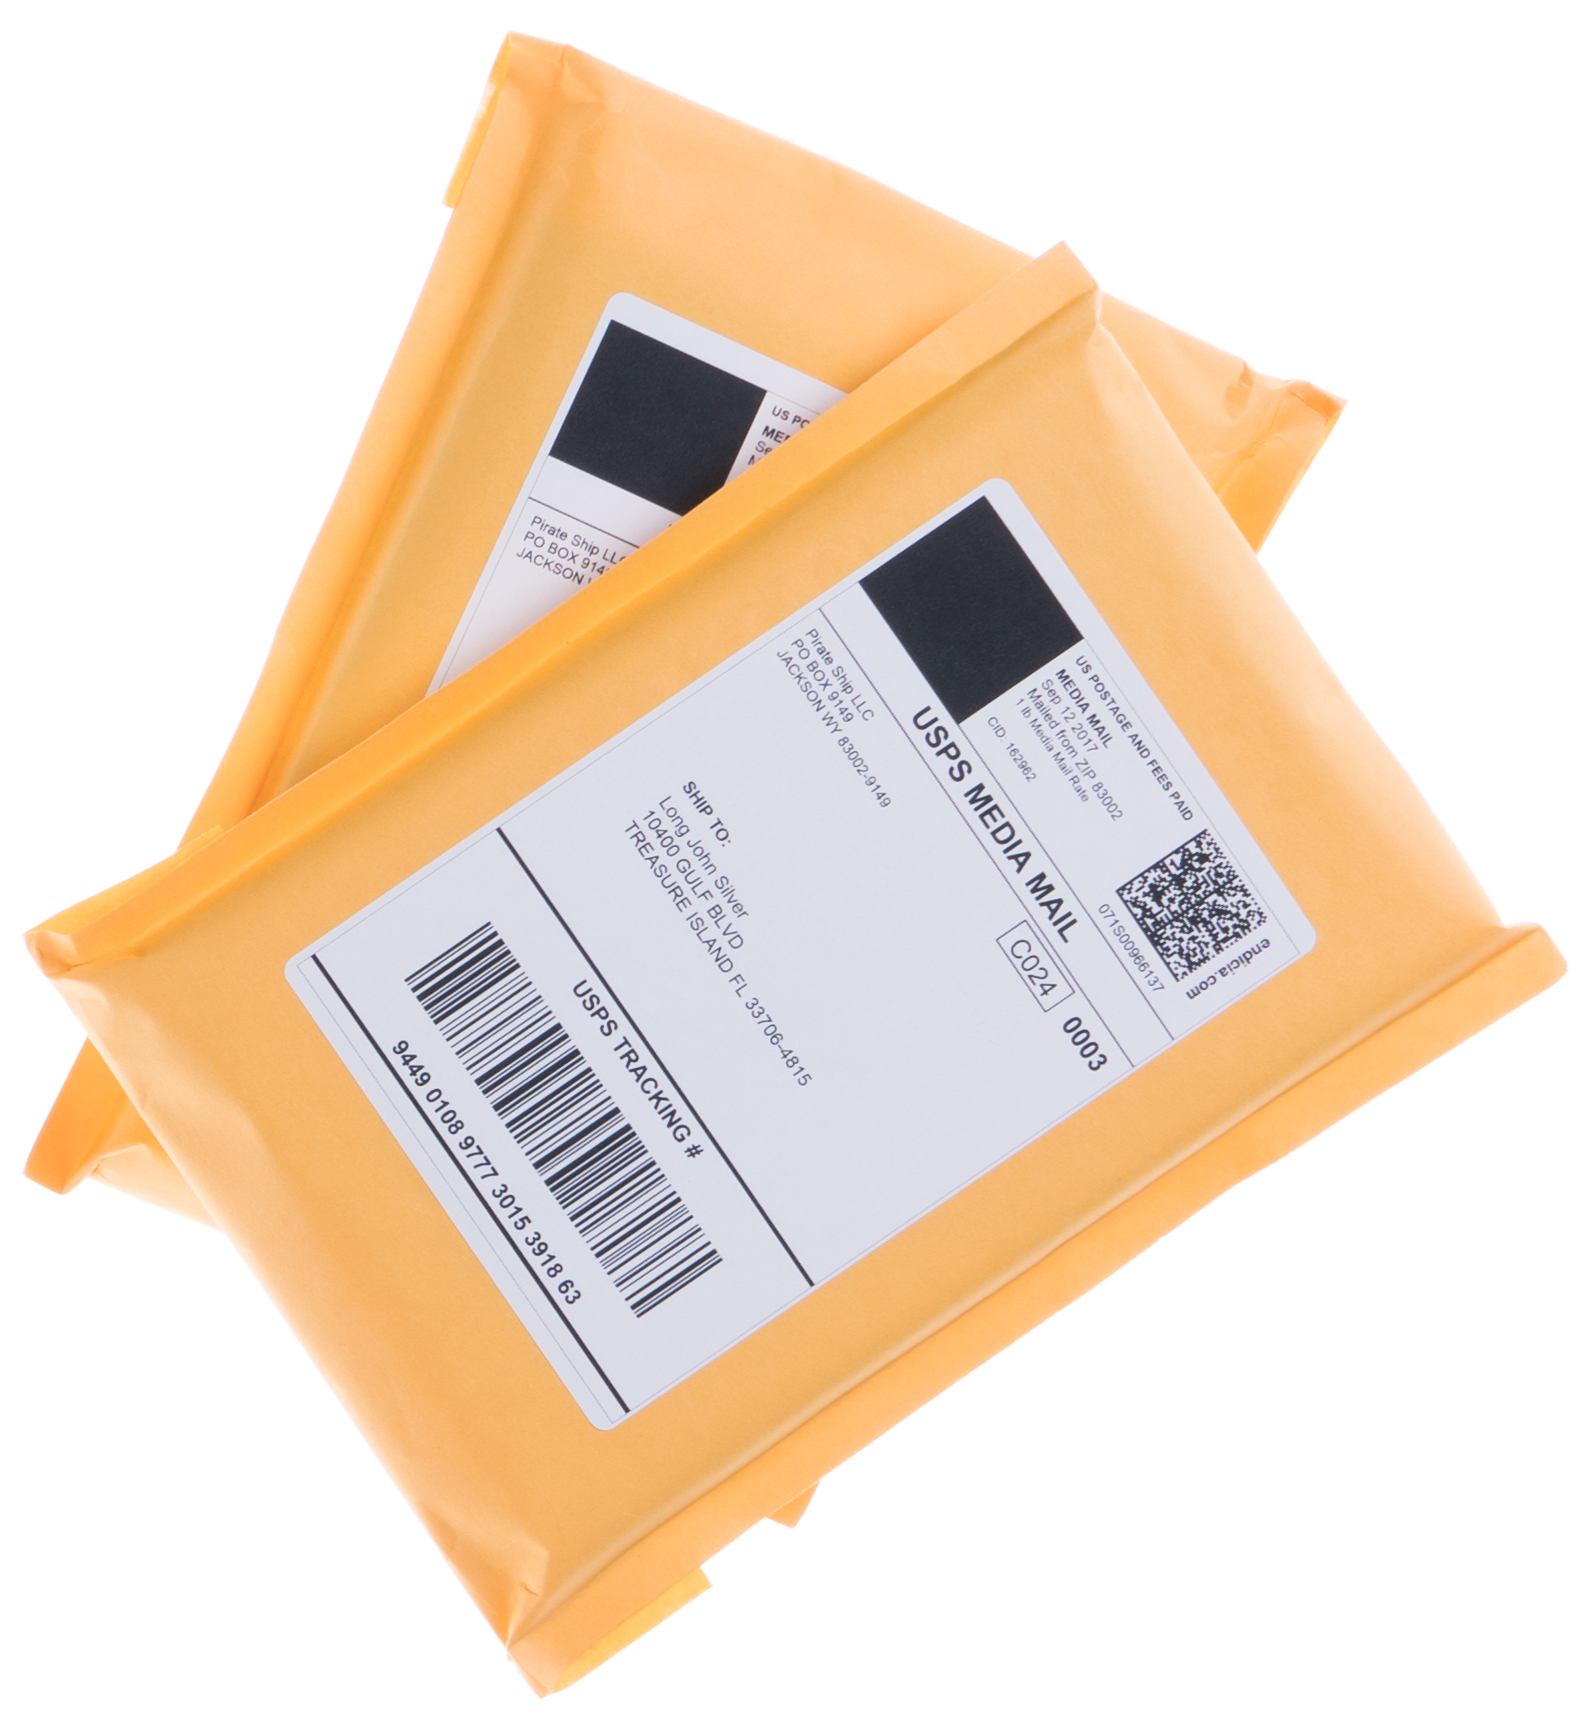 Shipping envelopes with USPS Media Mail postage